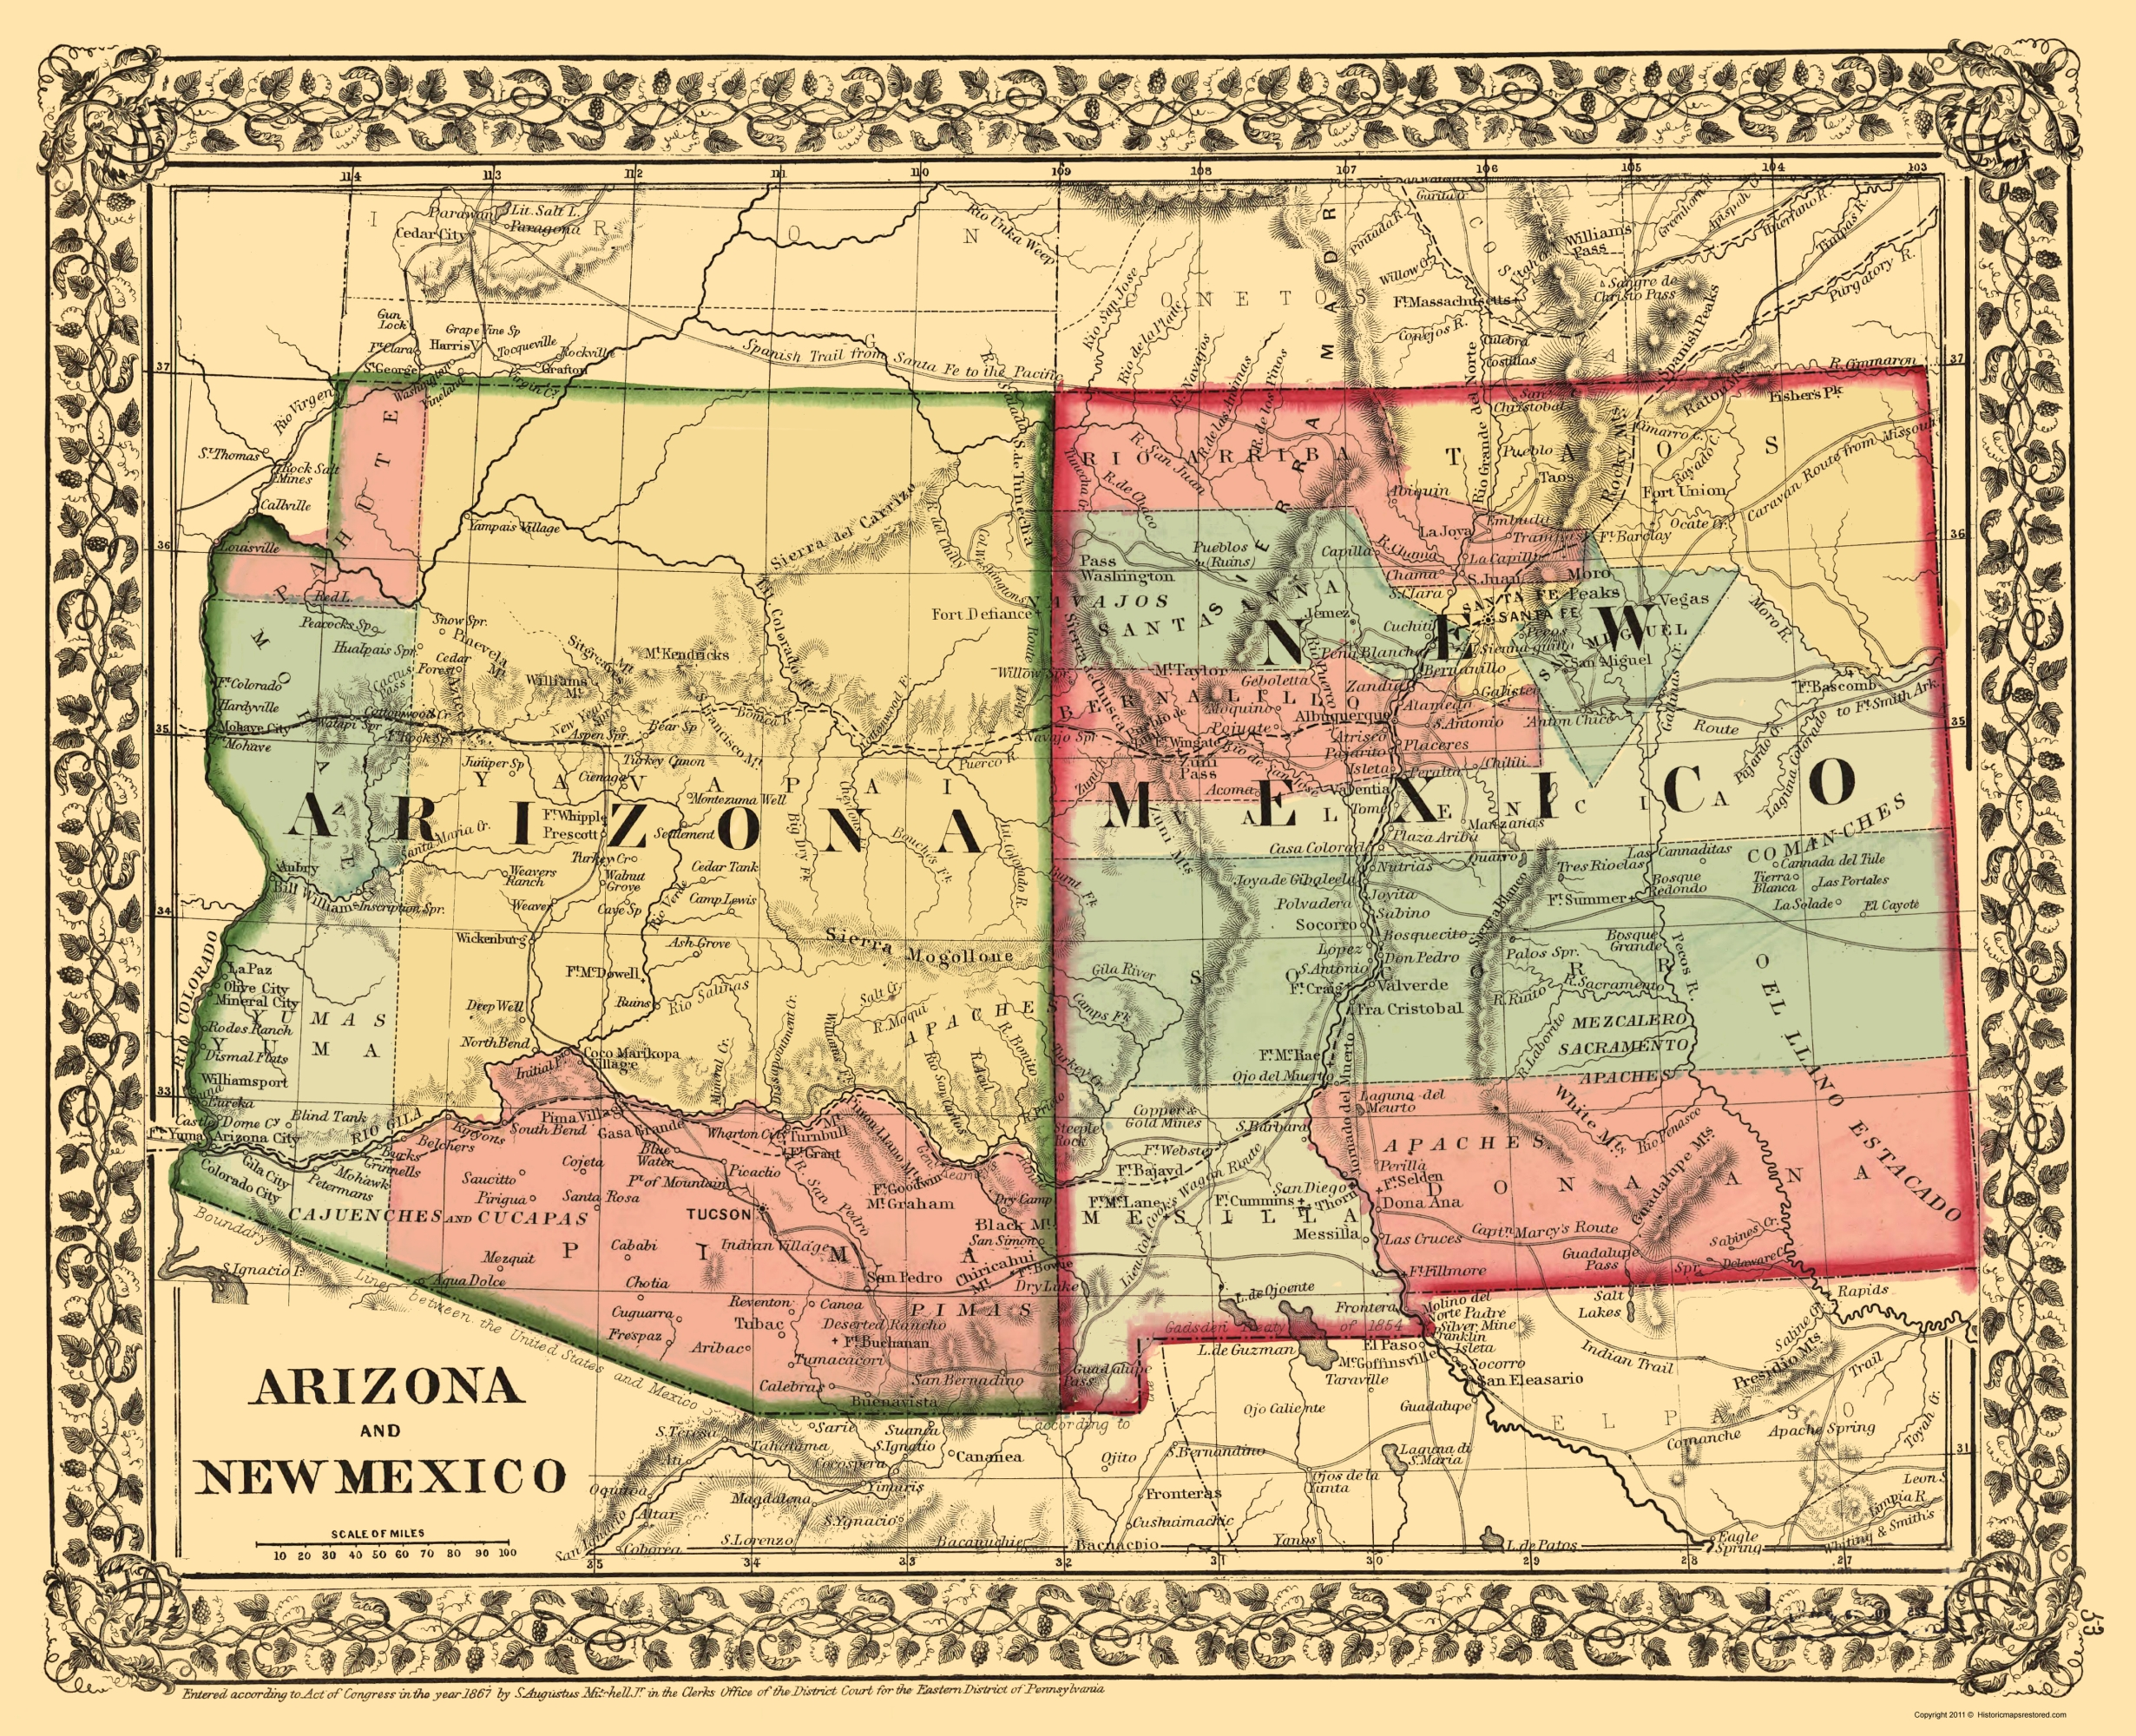 Old State Map New Mexico Arizona Mitchell 1867